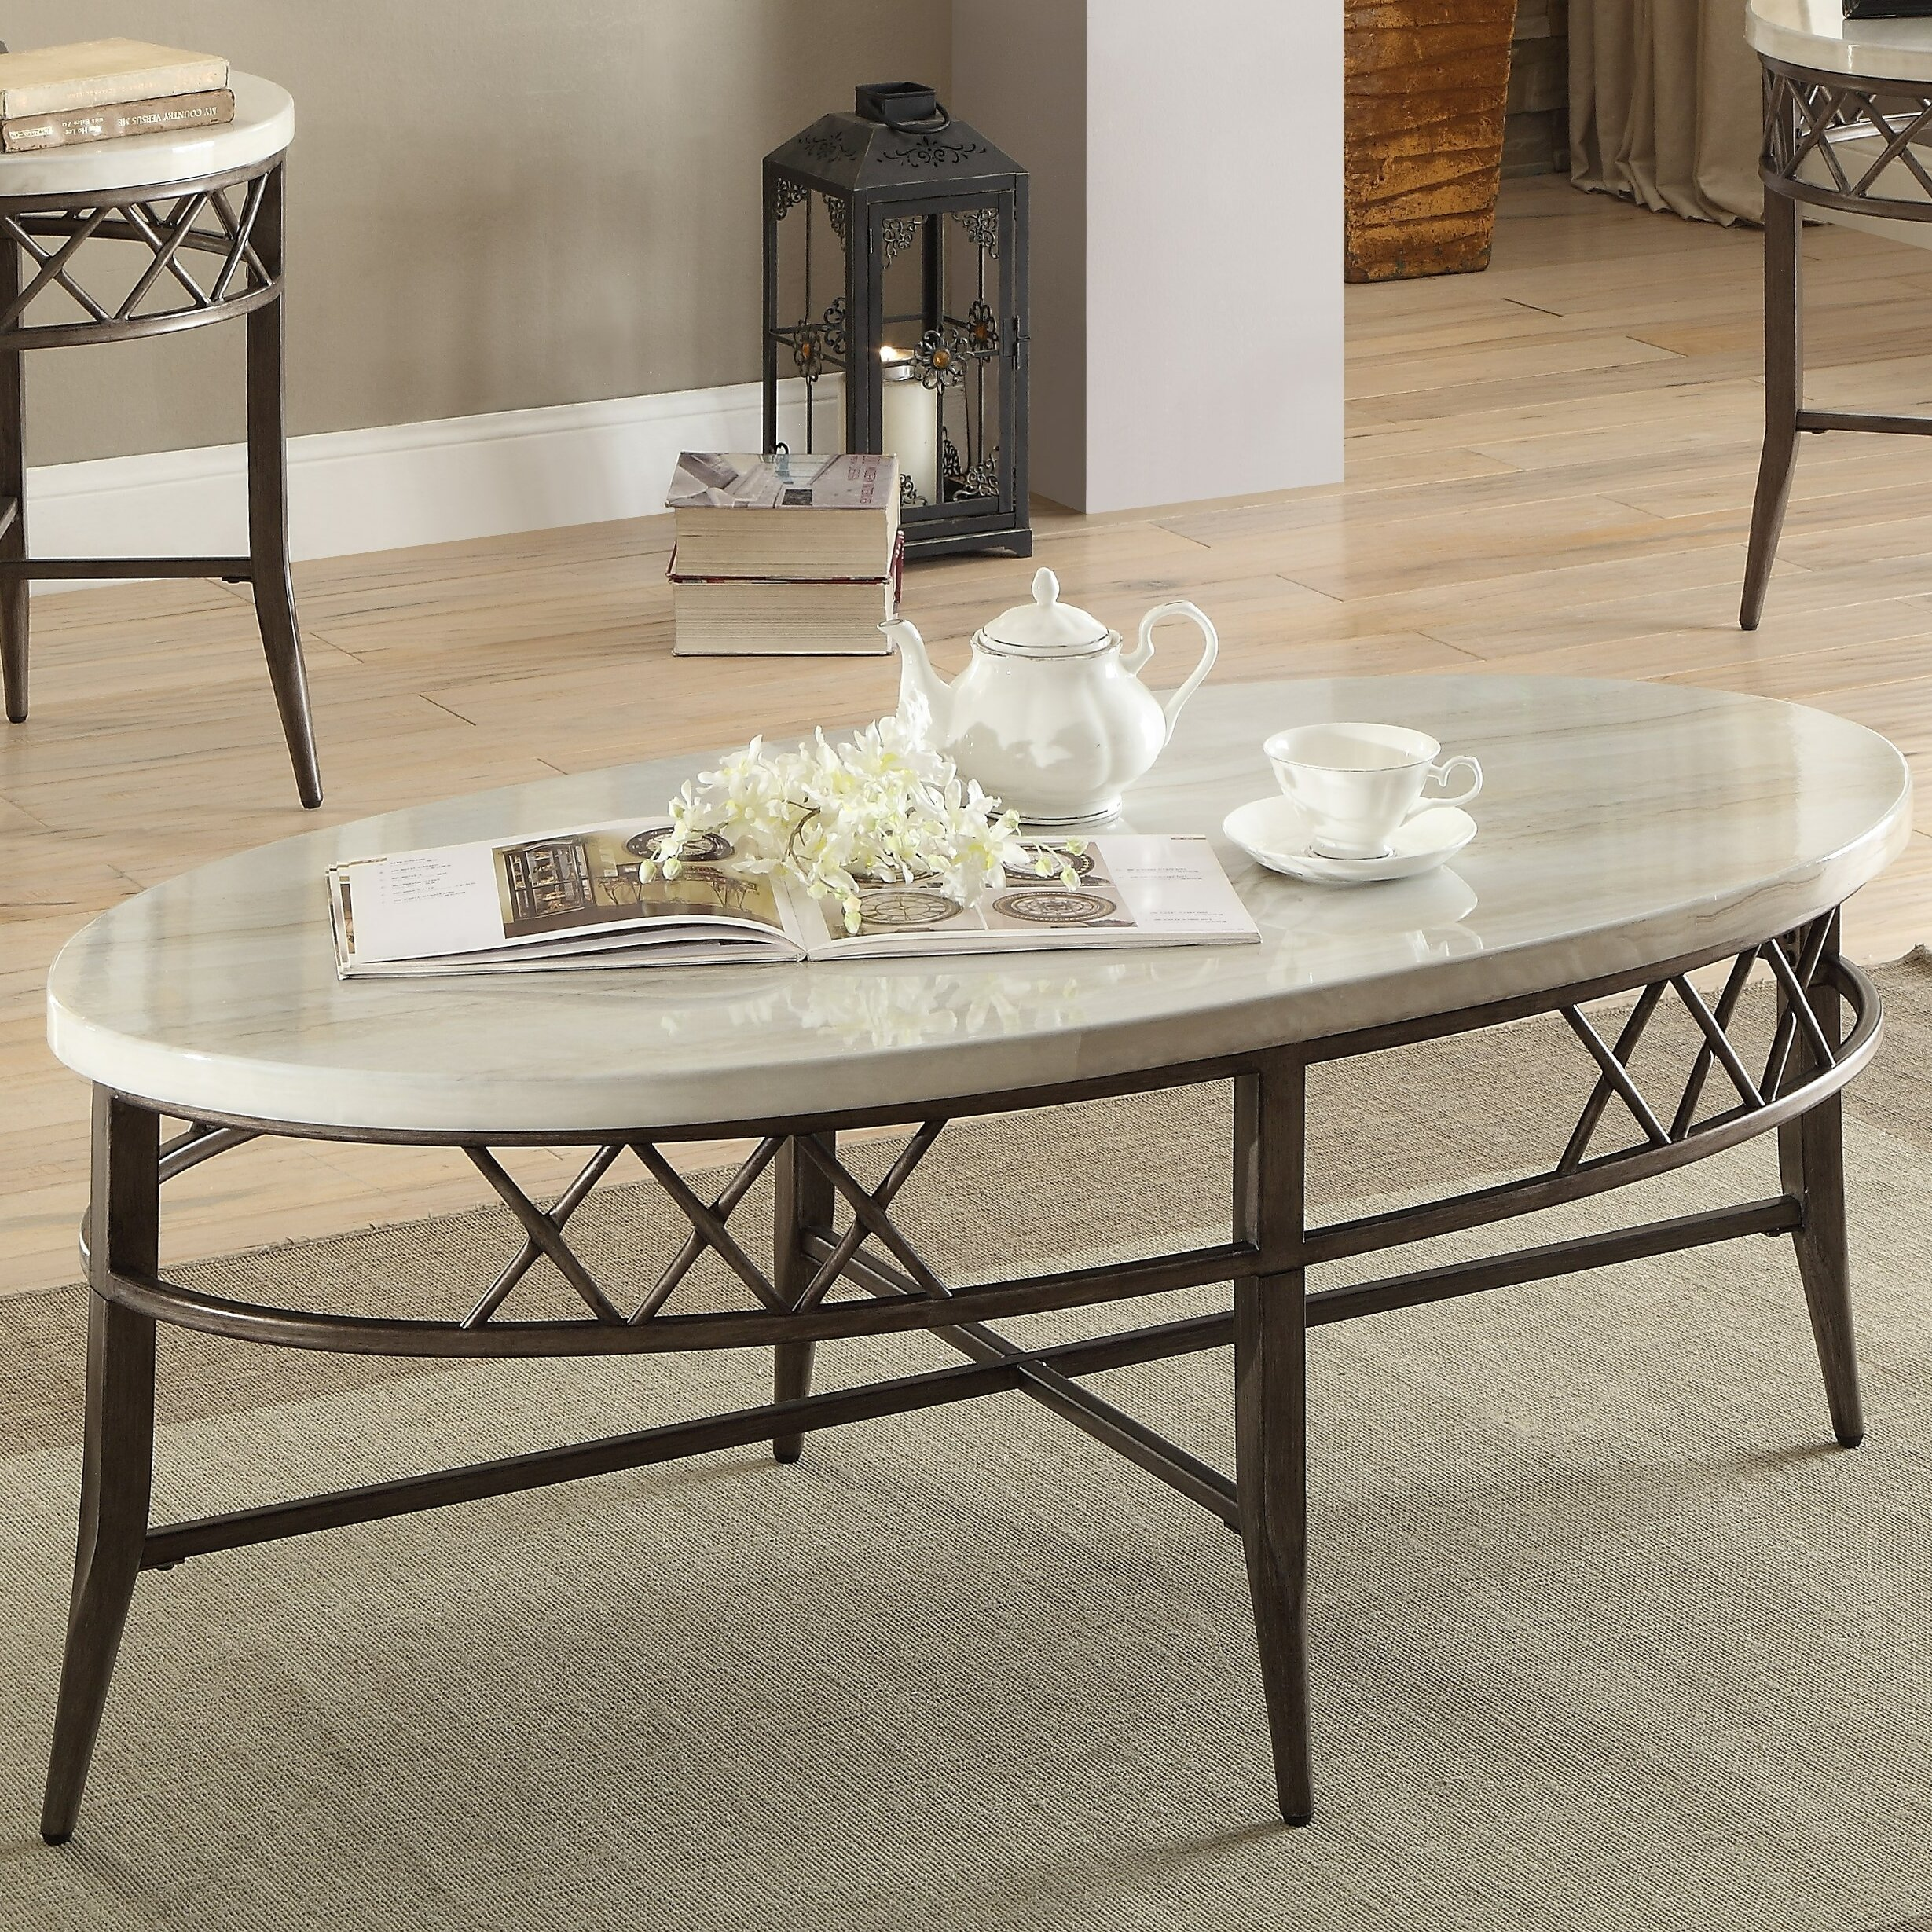 ACME Furniture Aldric Faux Marble 3 Piece Coffee Table Set